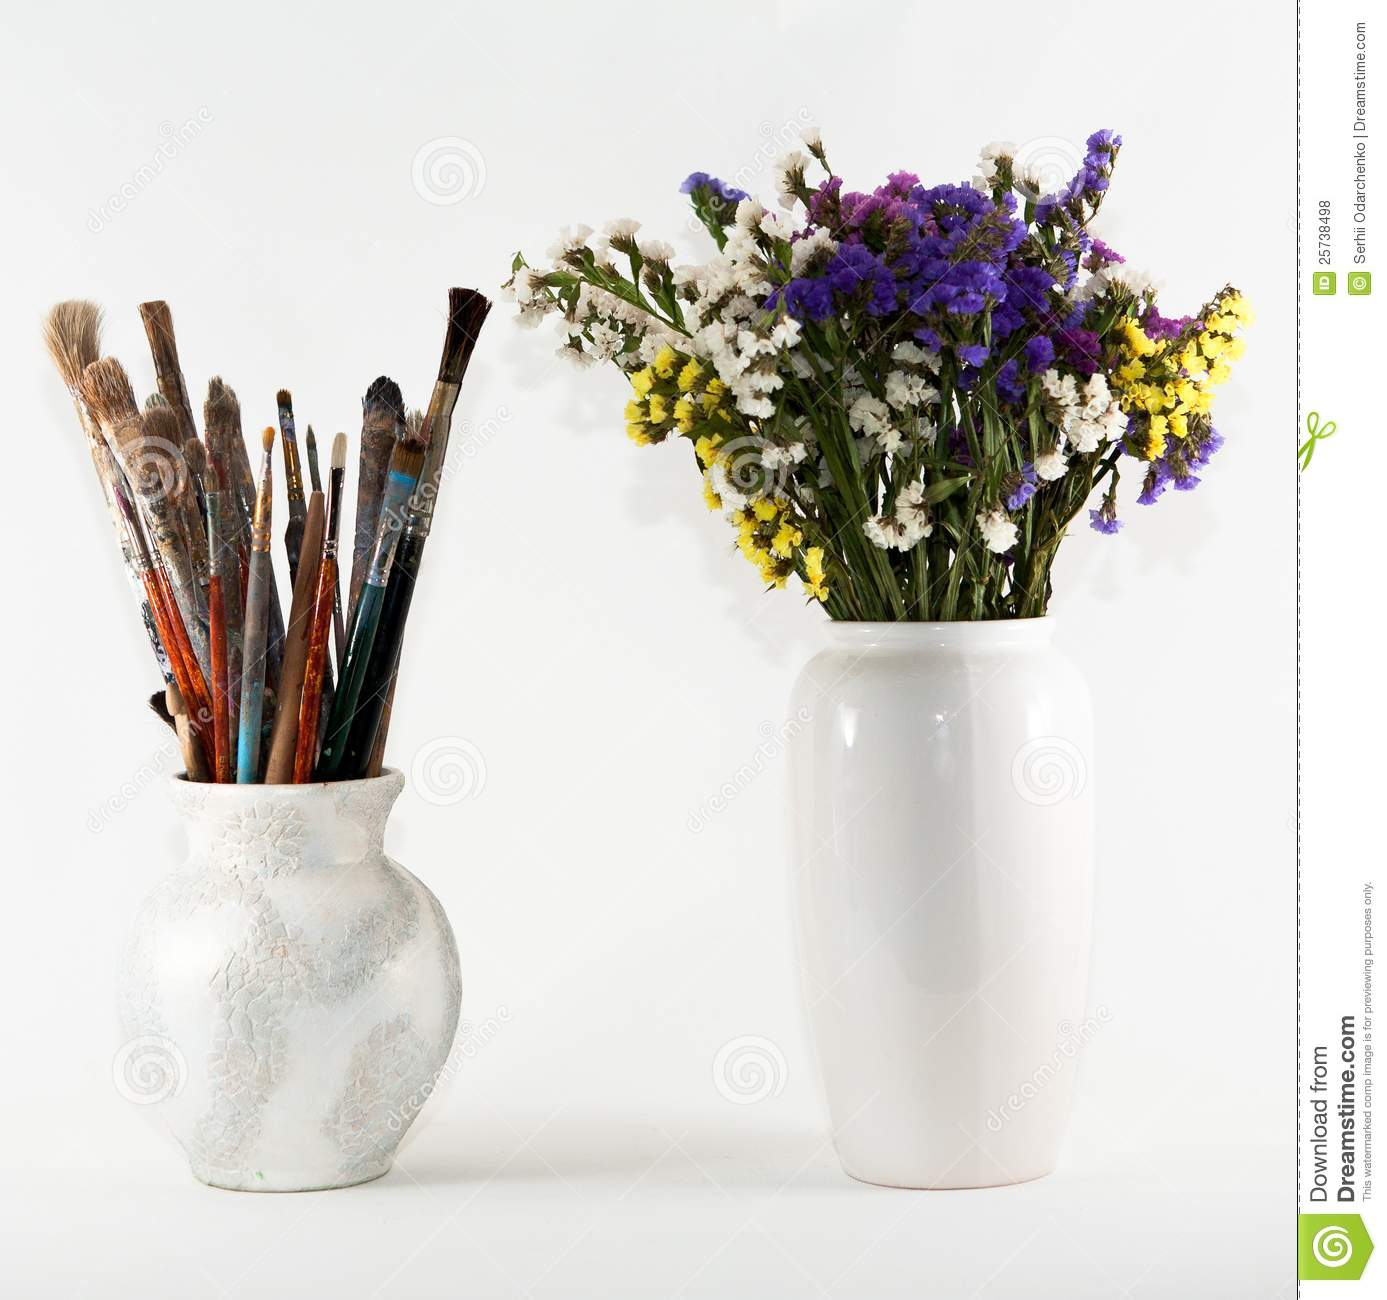 Jug with brushes and vase of wild flowers